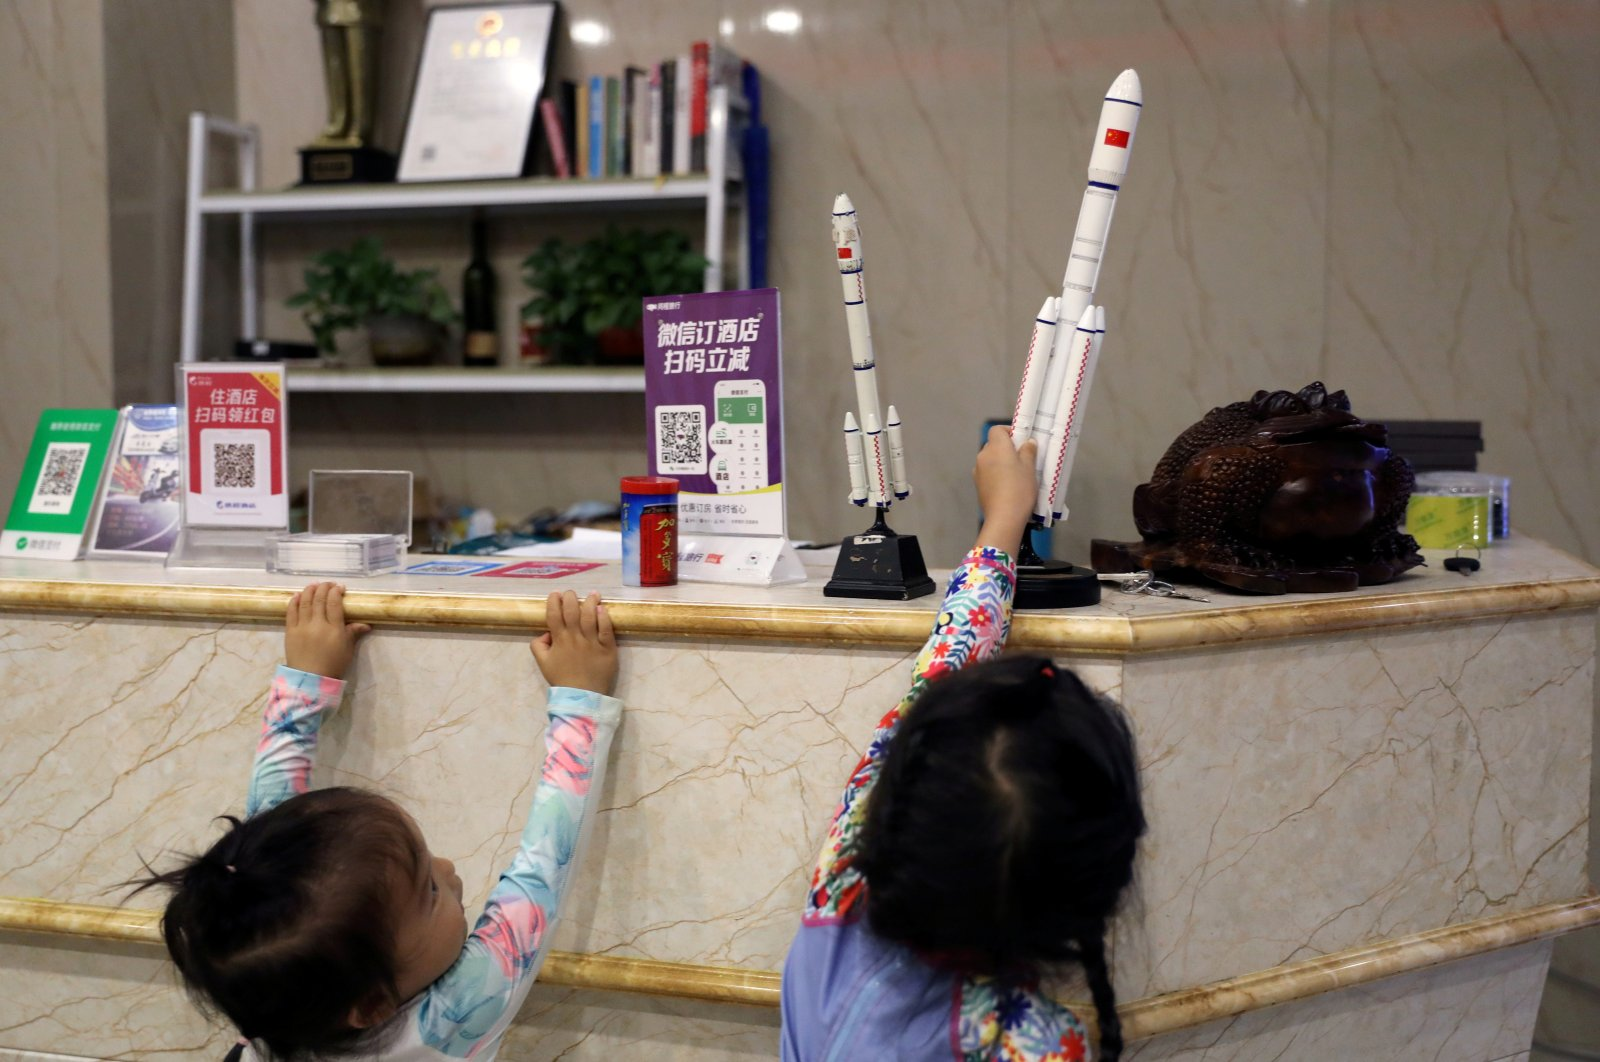 Children play with models of rockets at the reception desk of a hotel in Longlou town, Wenchang, Hainan province, Nov. 22, 2020. (REUTERS Photo)